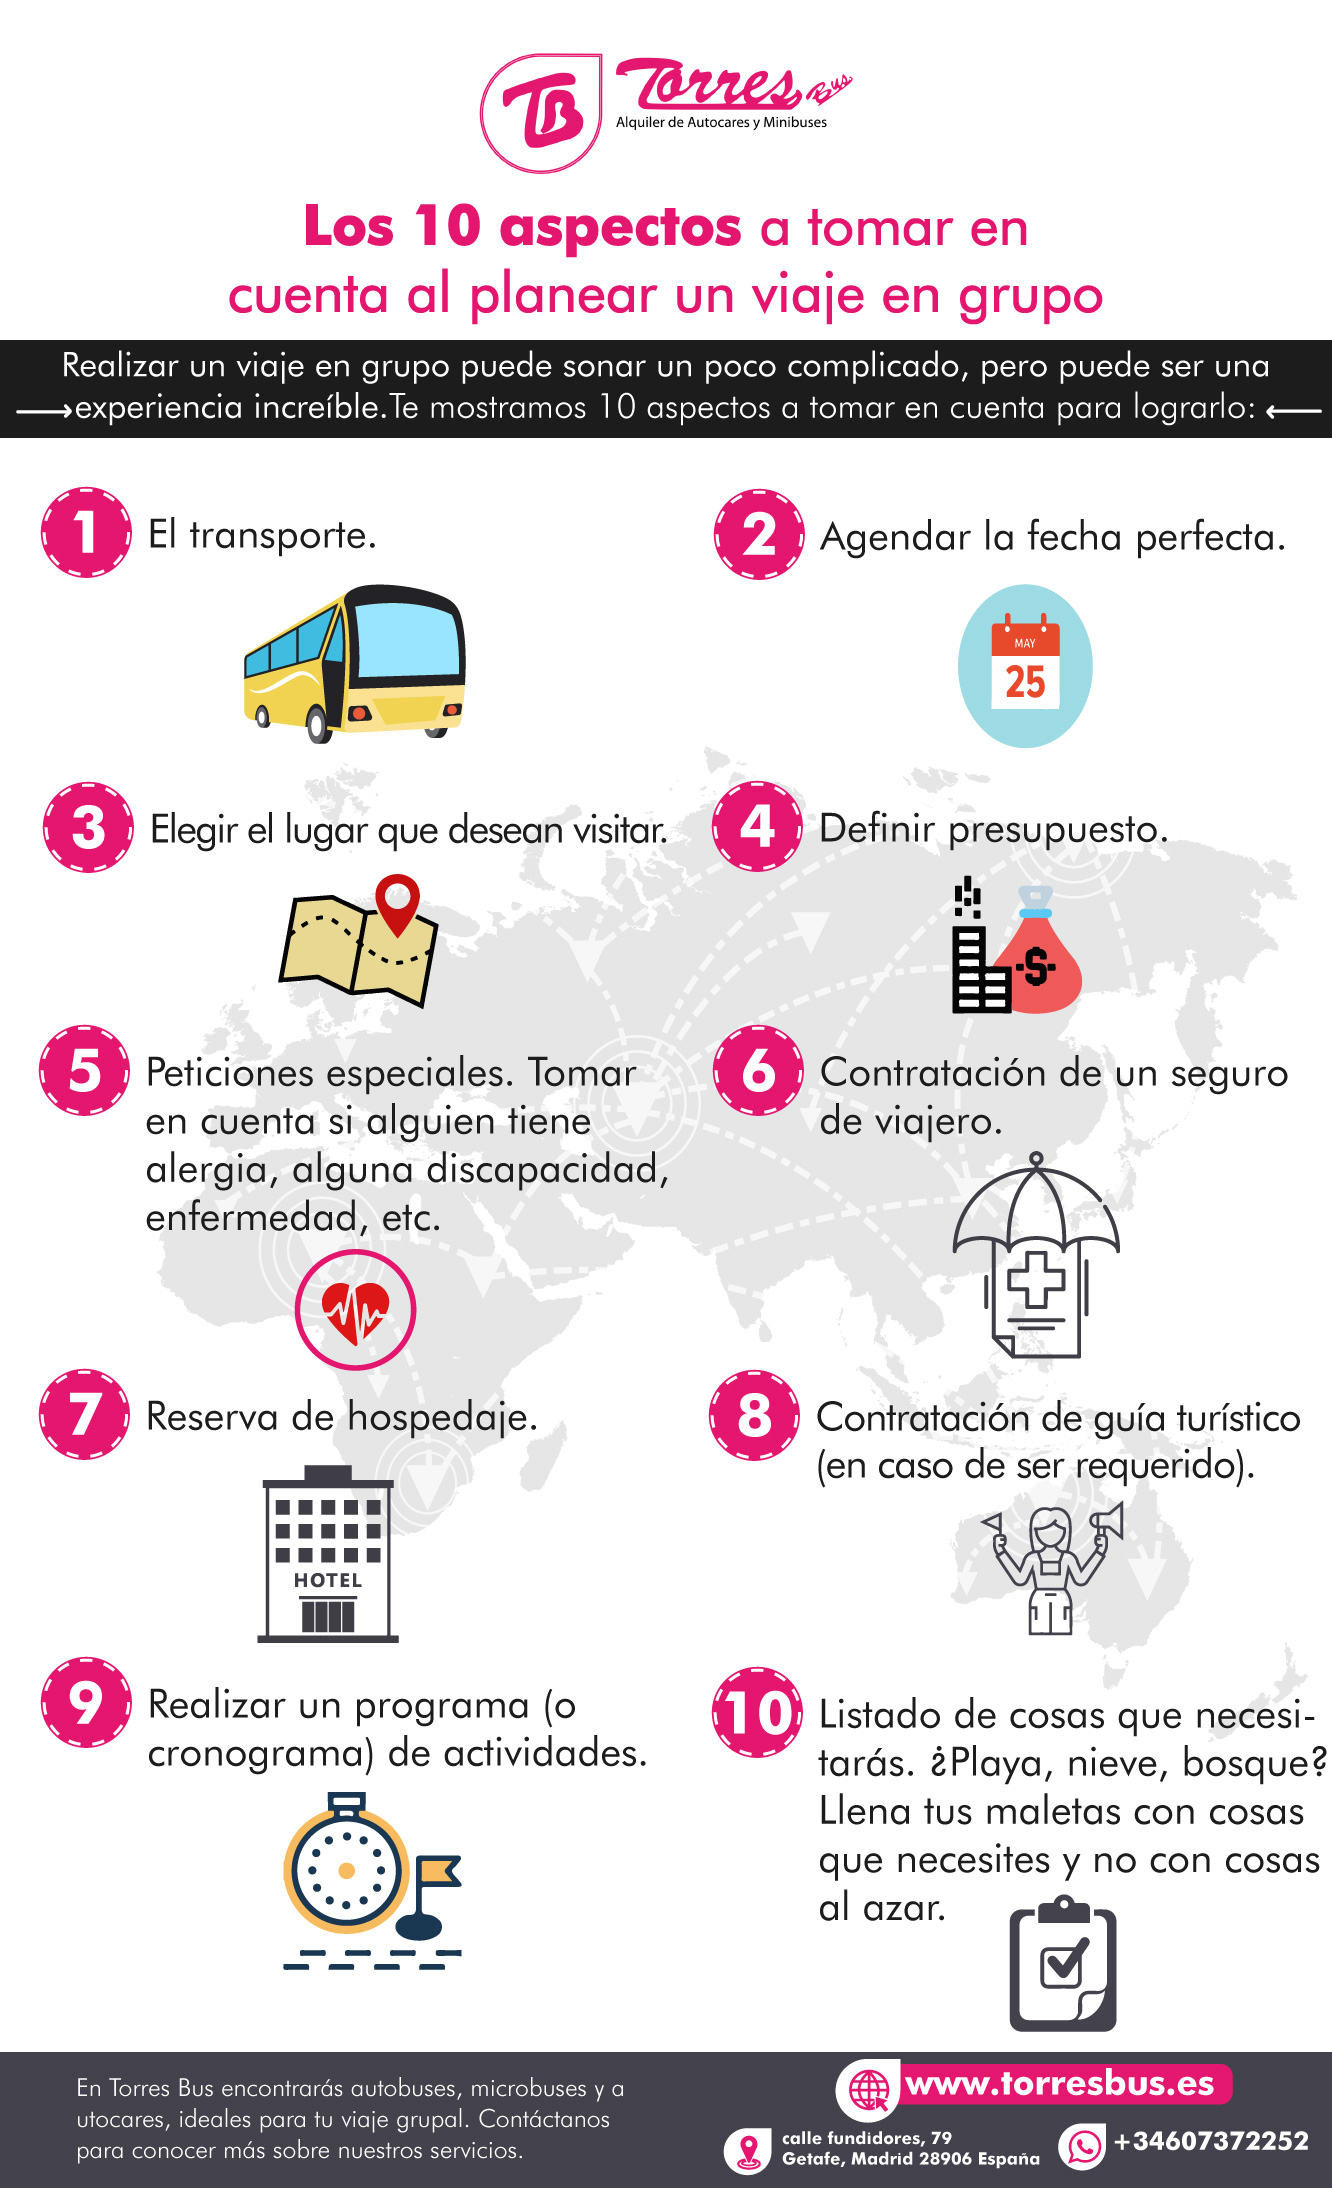 coaches torresbus the 10 best-tips-to-plan-a-group-trip